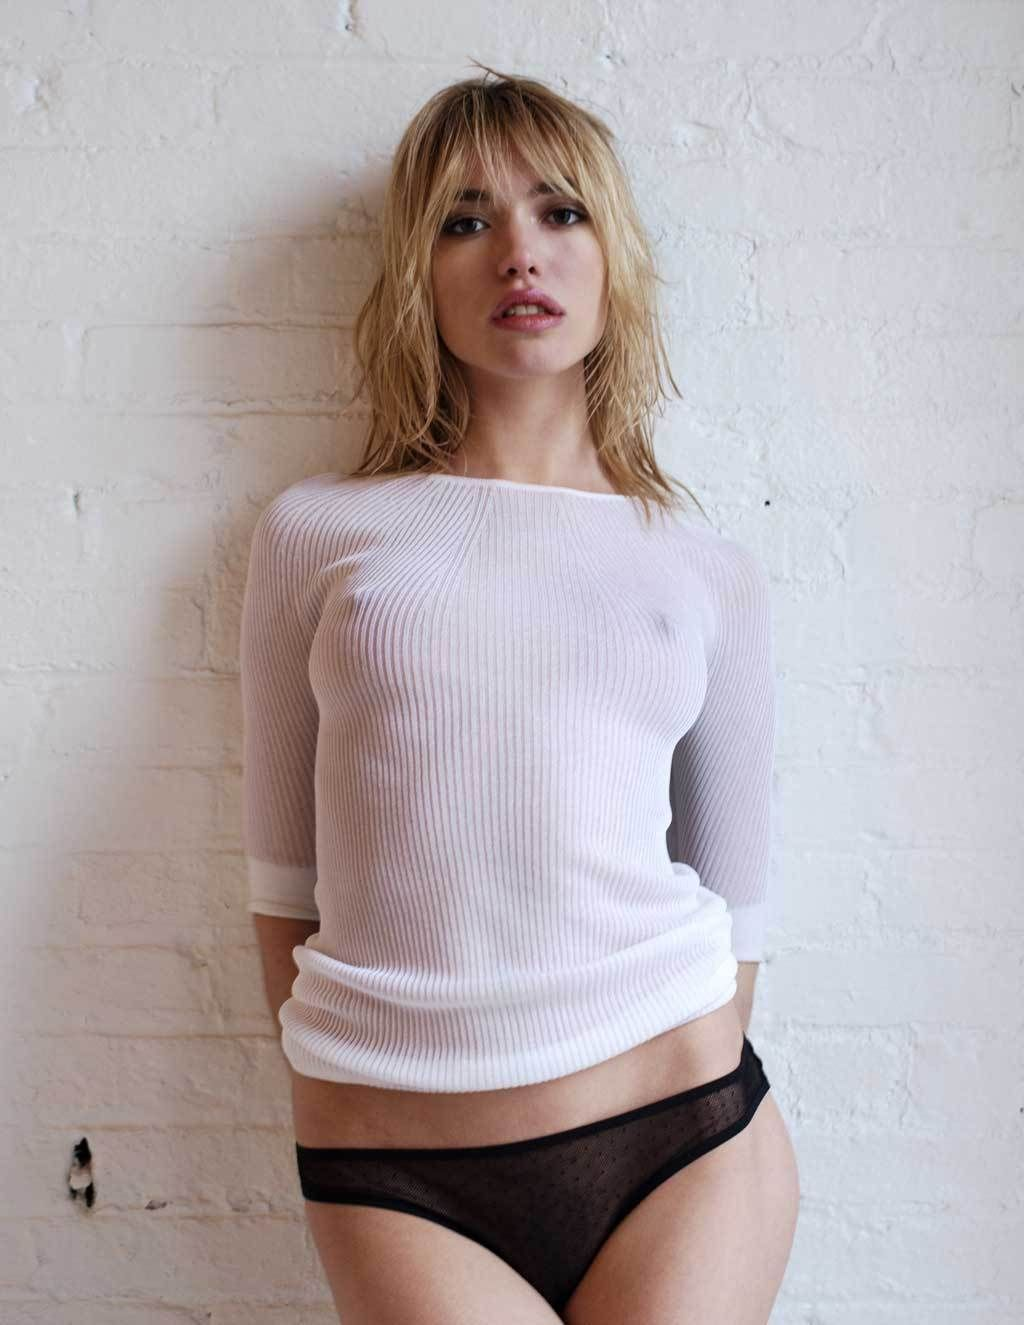 Speak sexy girls in tight sweaters seems remarkable